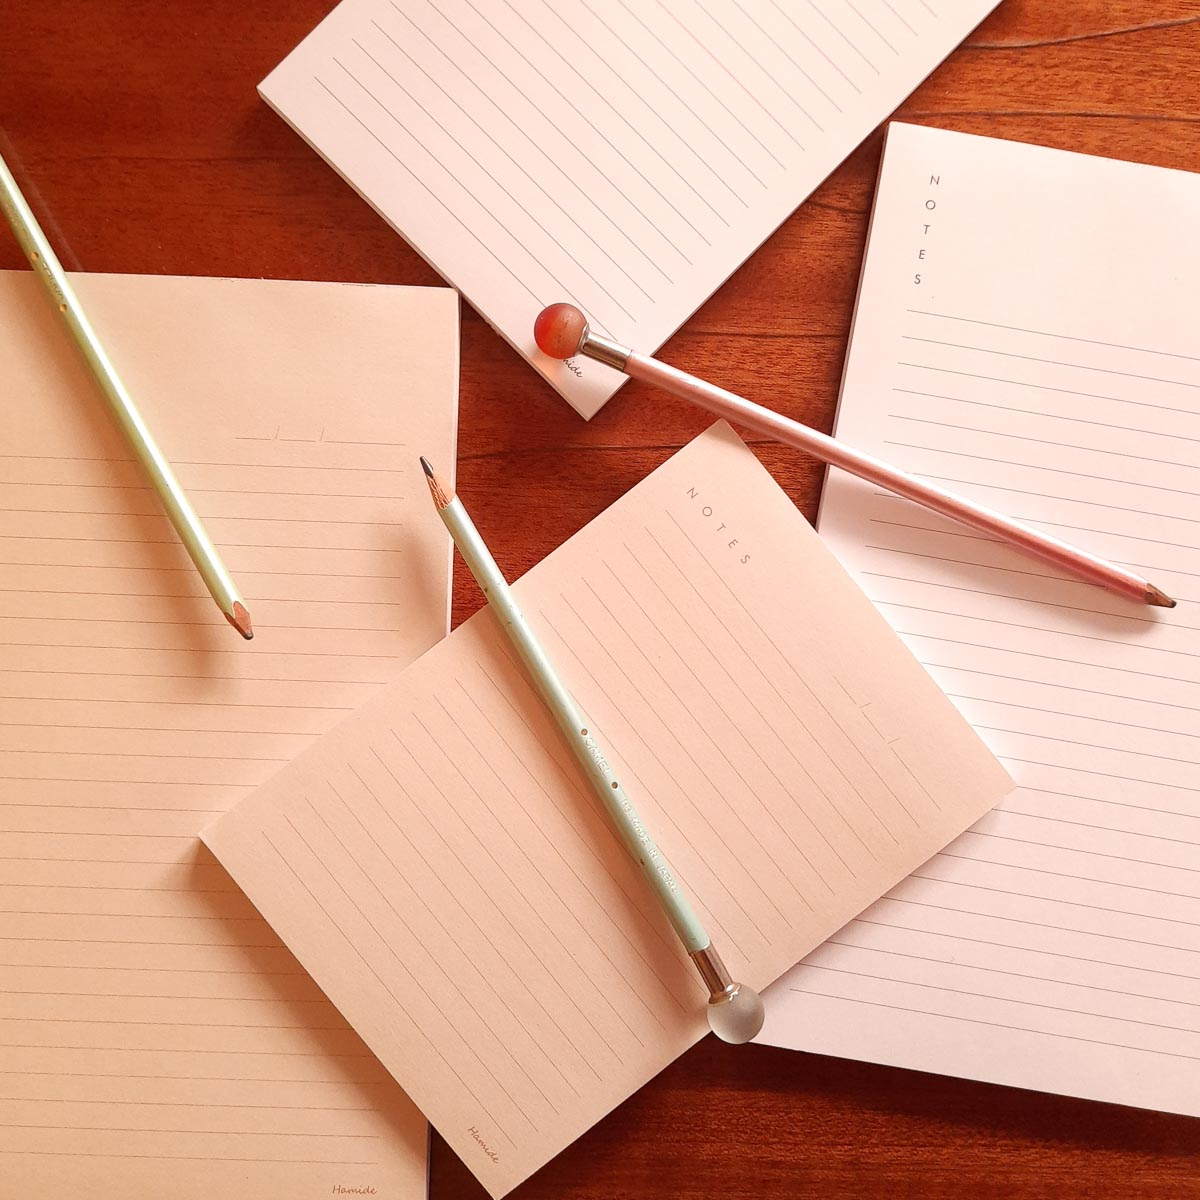 Hamide Basics notepads laying on a table with pencils